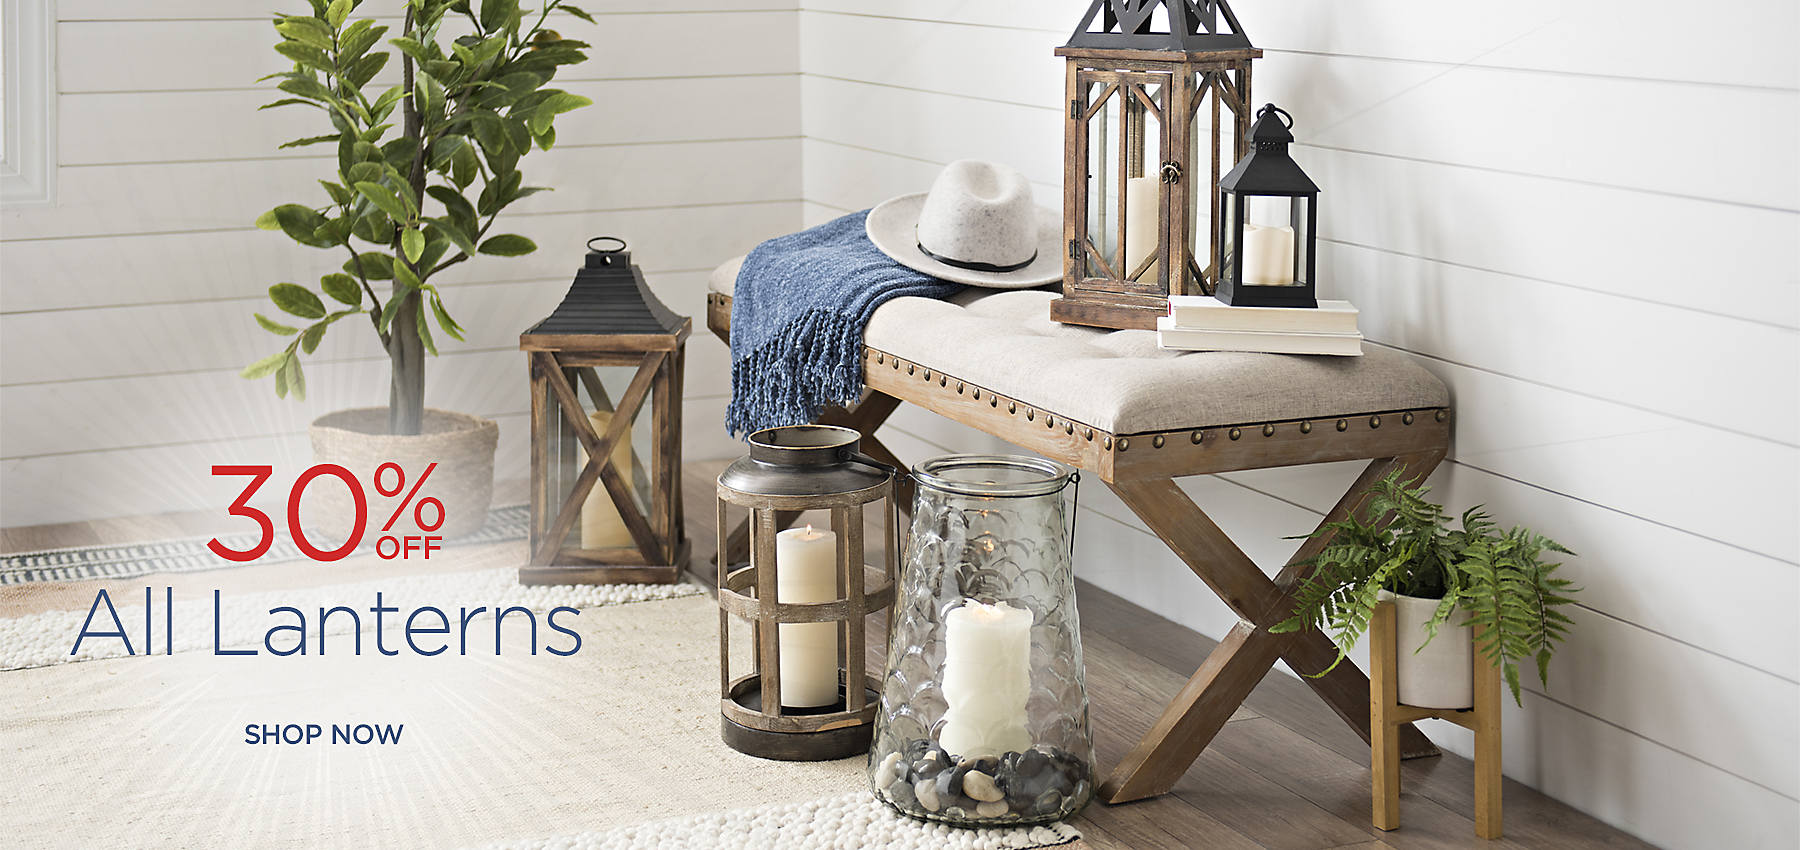 30% Off All Lanterns - Shop Now